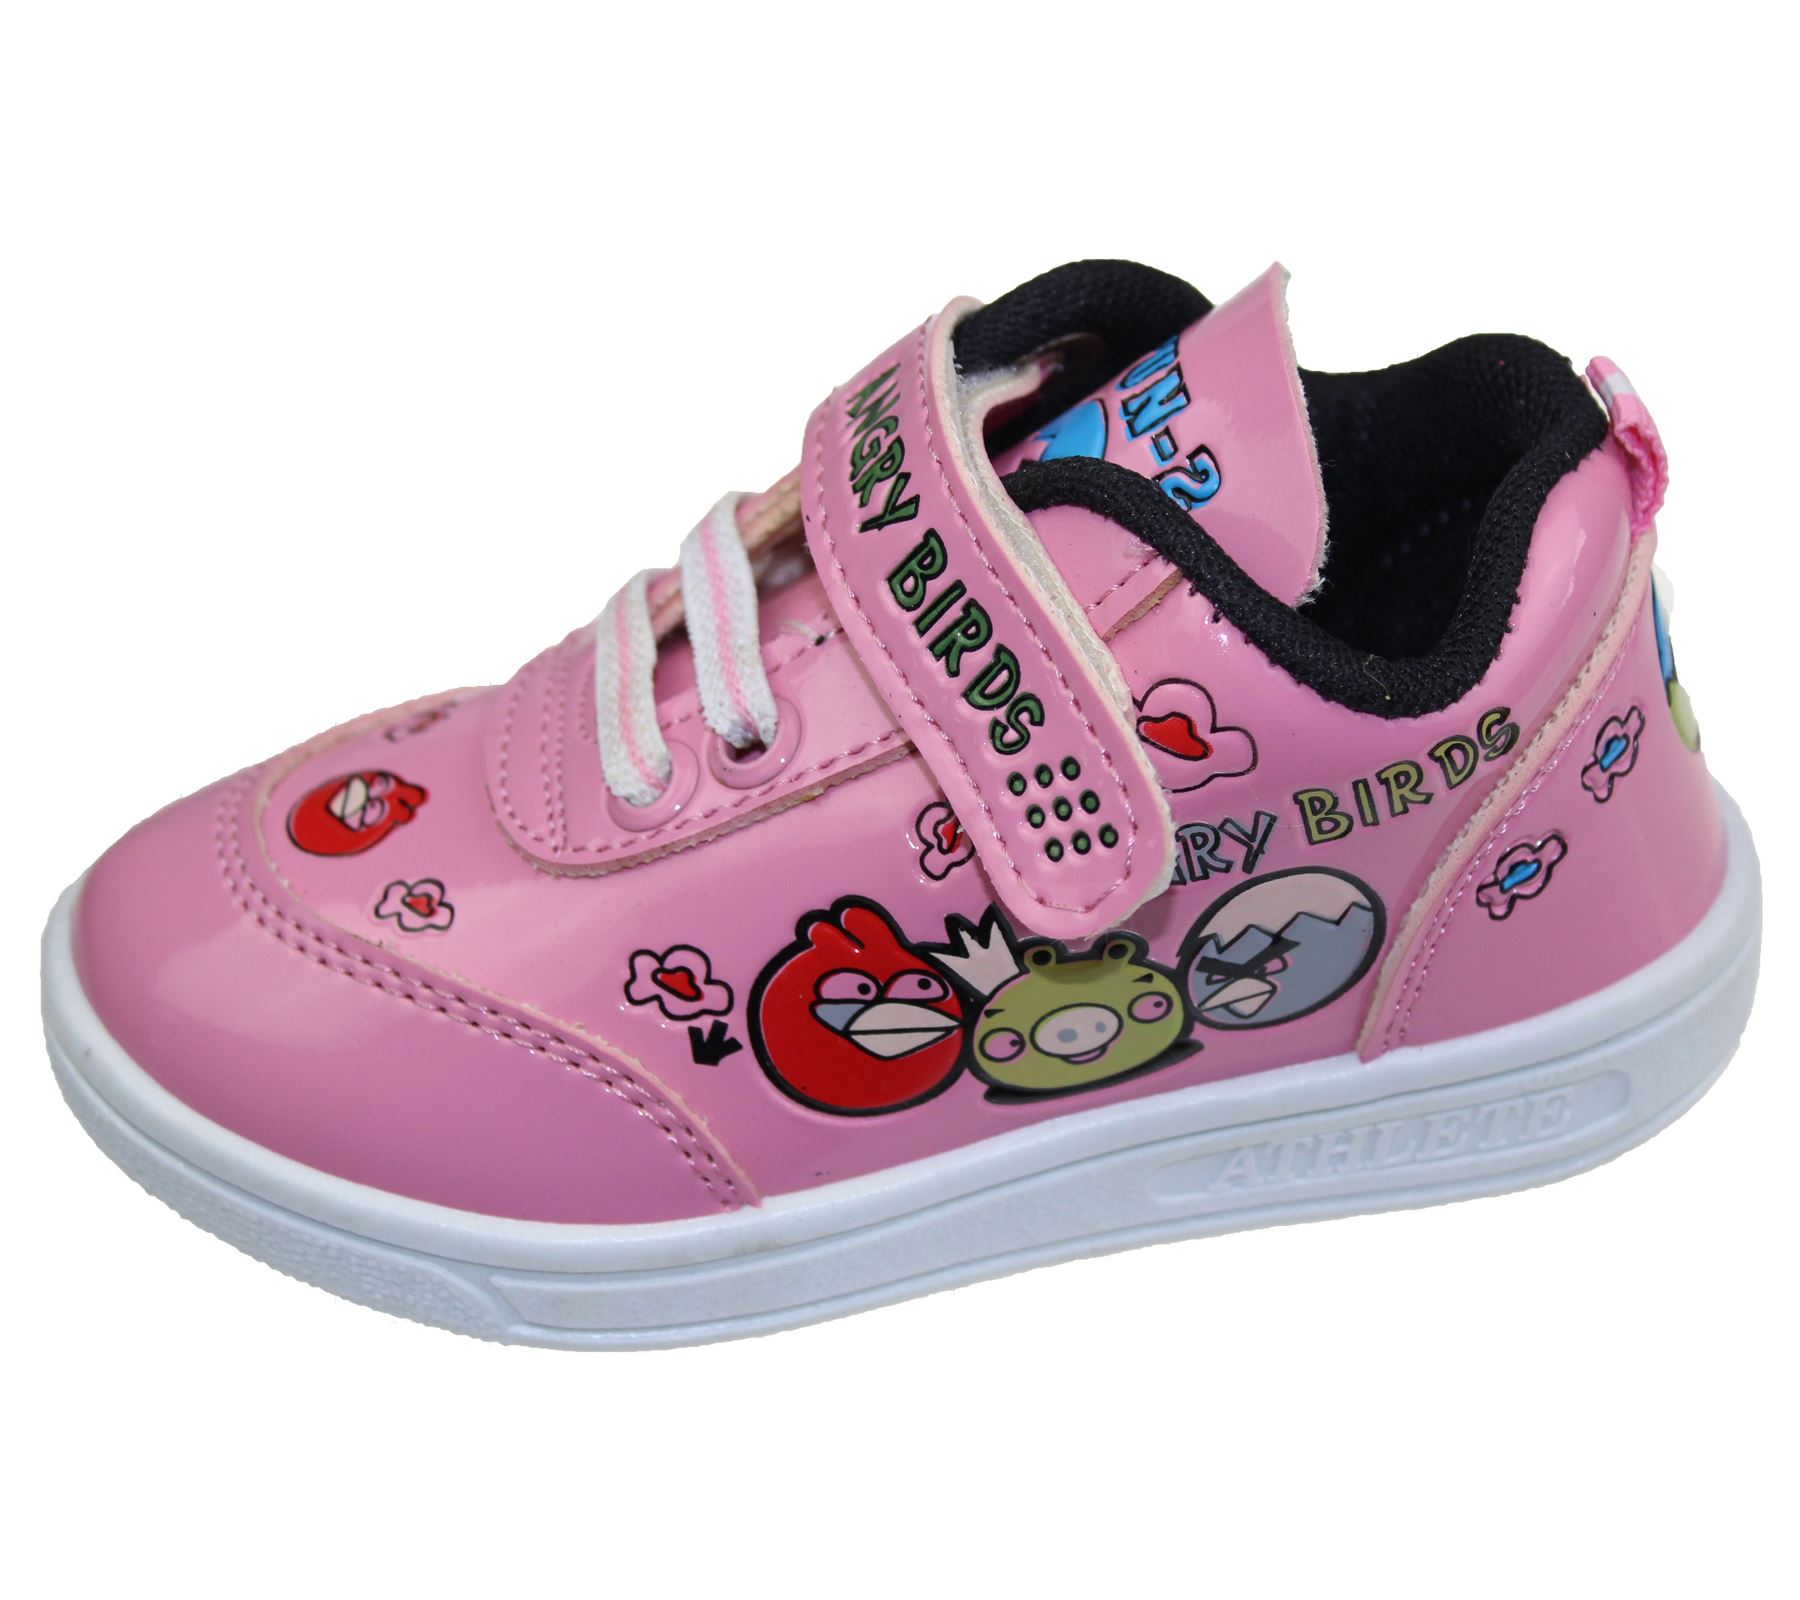 Find a wide selection of trainers for boys, girls, toddlers & babies featuring top sports brands including adidas, Nike, Reebok, Converse & Puma. Next day delivery available.